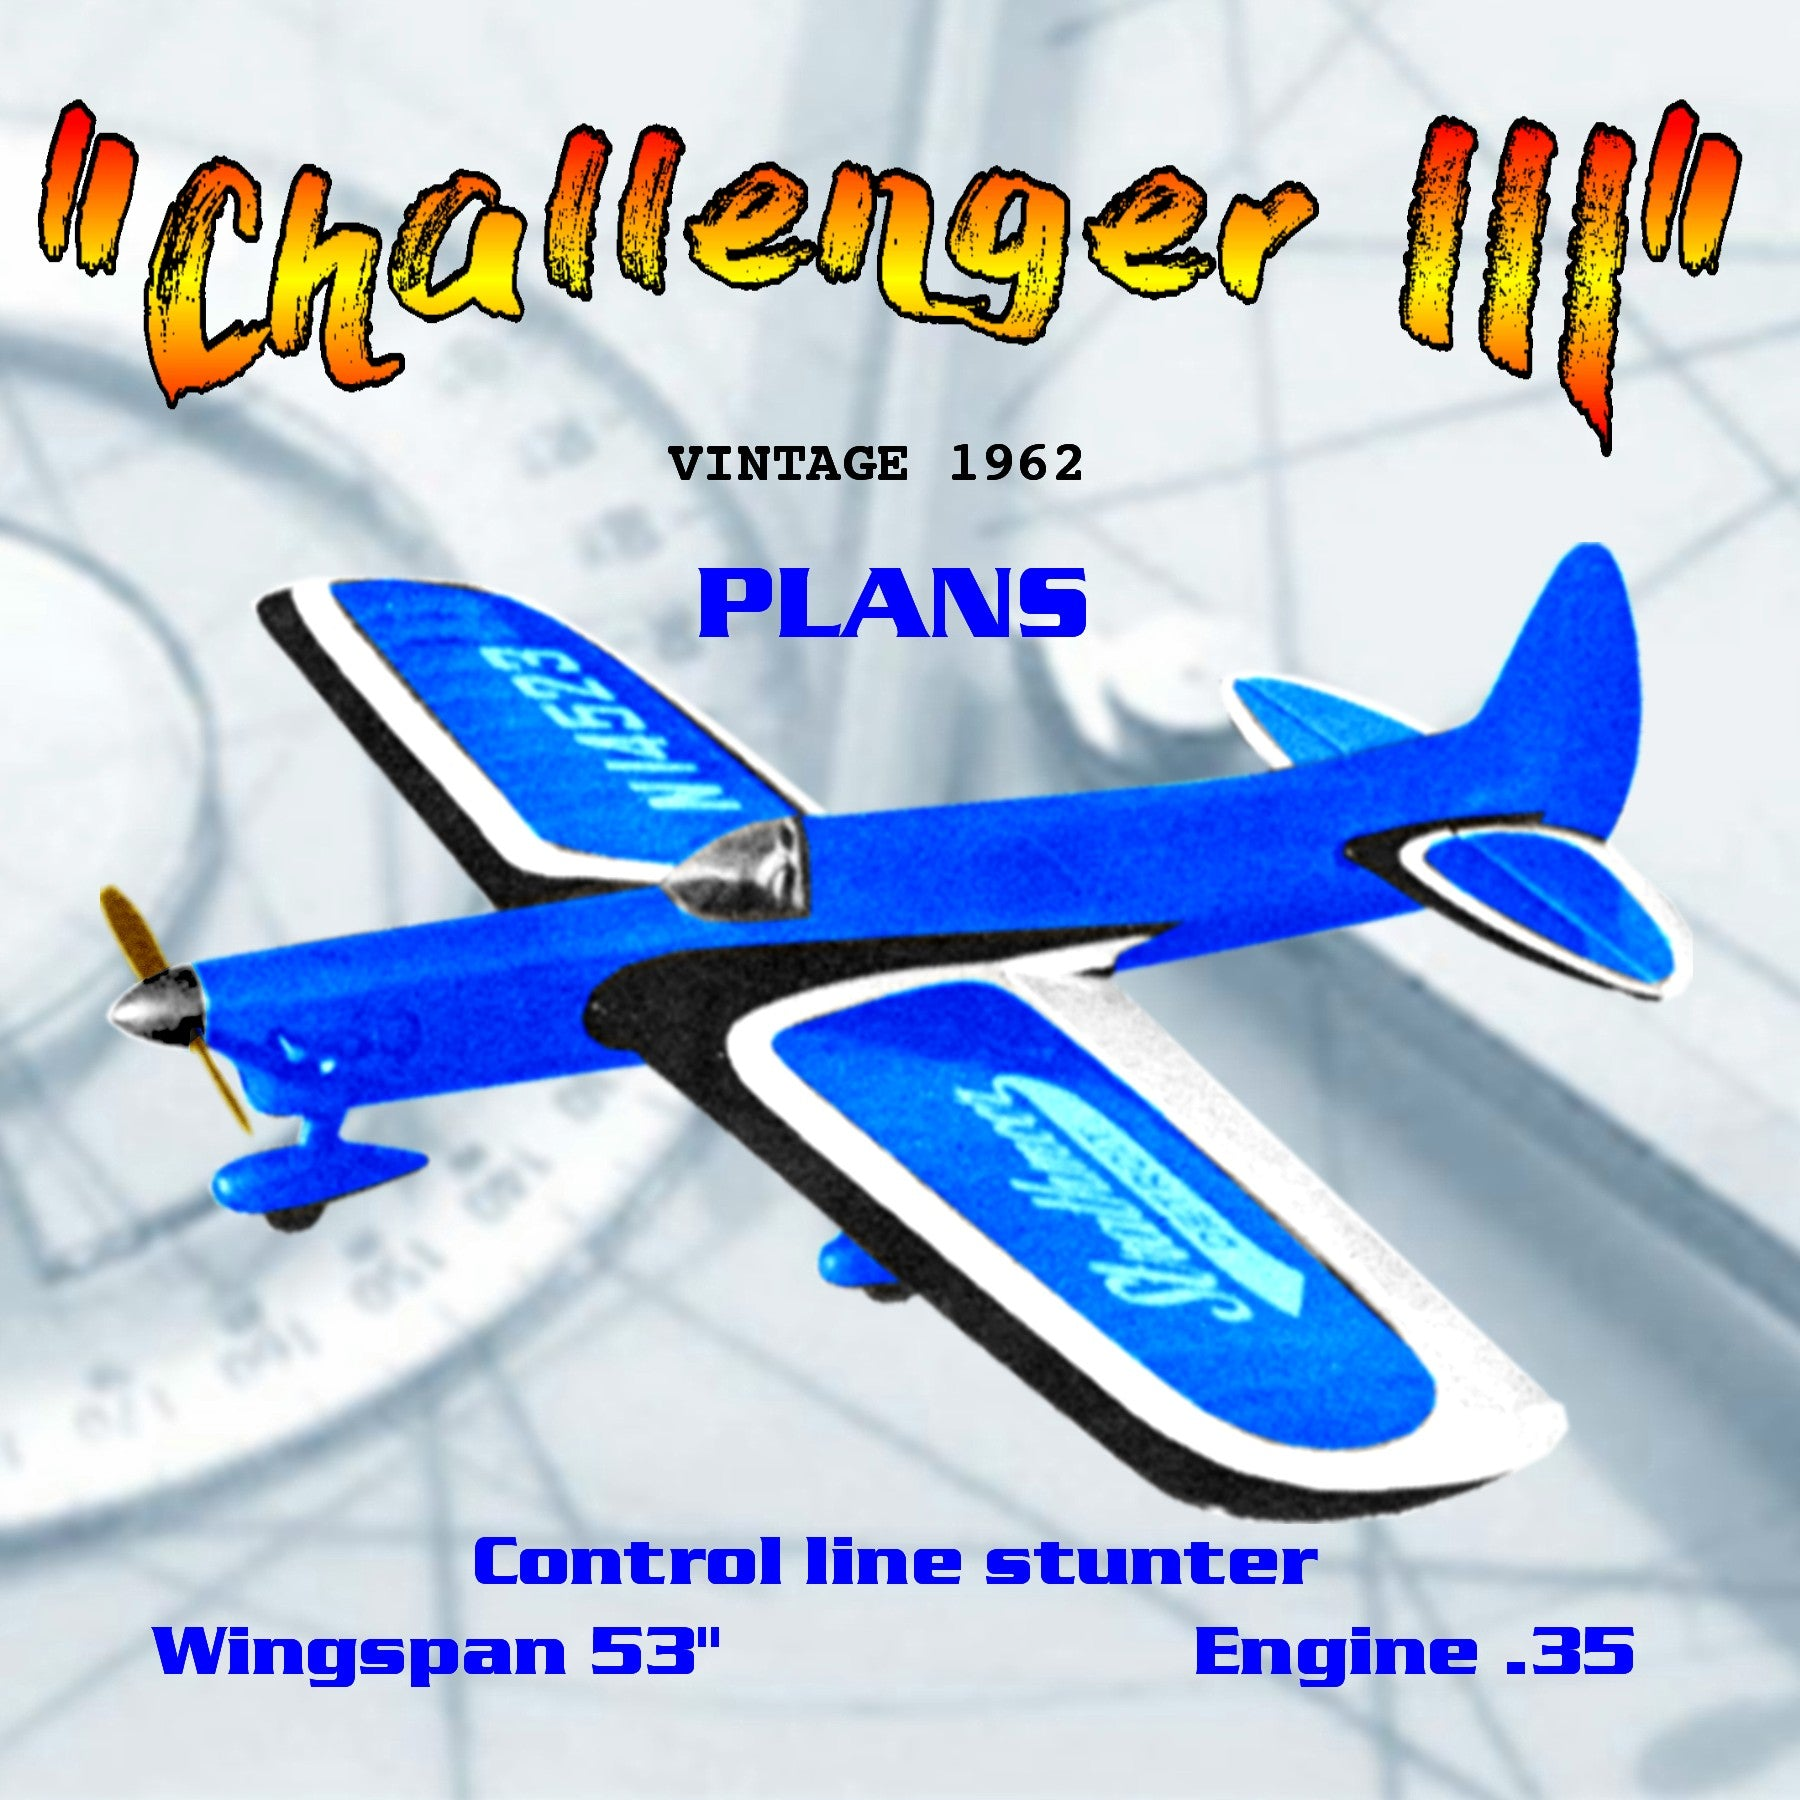 "Full Size Printed Plan vintage 1962 Control line stunter ""Challenger III"" McDonald's great"